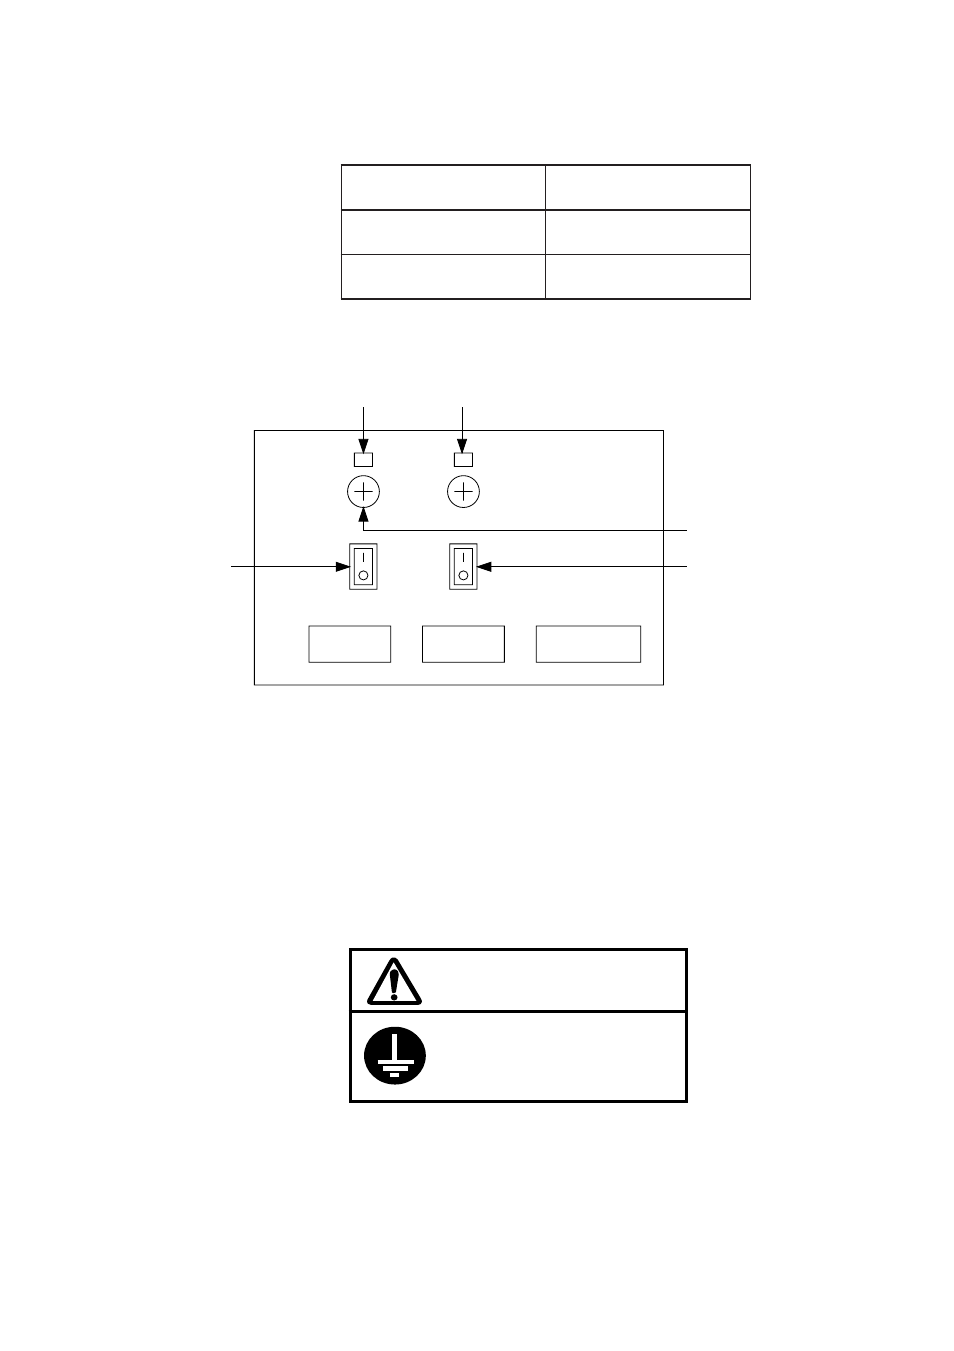 medium resolution of caution changing the power fuse ground furuno fm 8500 user manual page 21 46